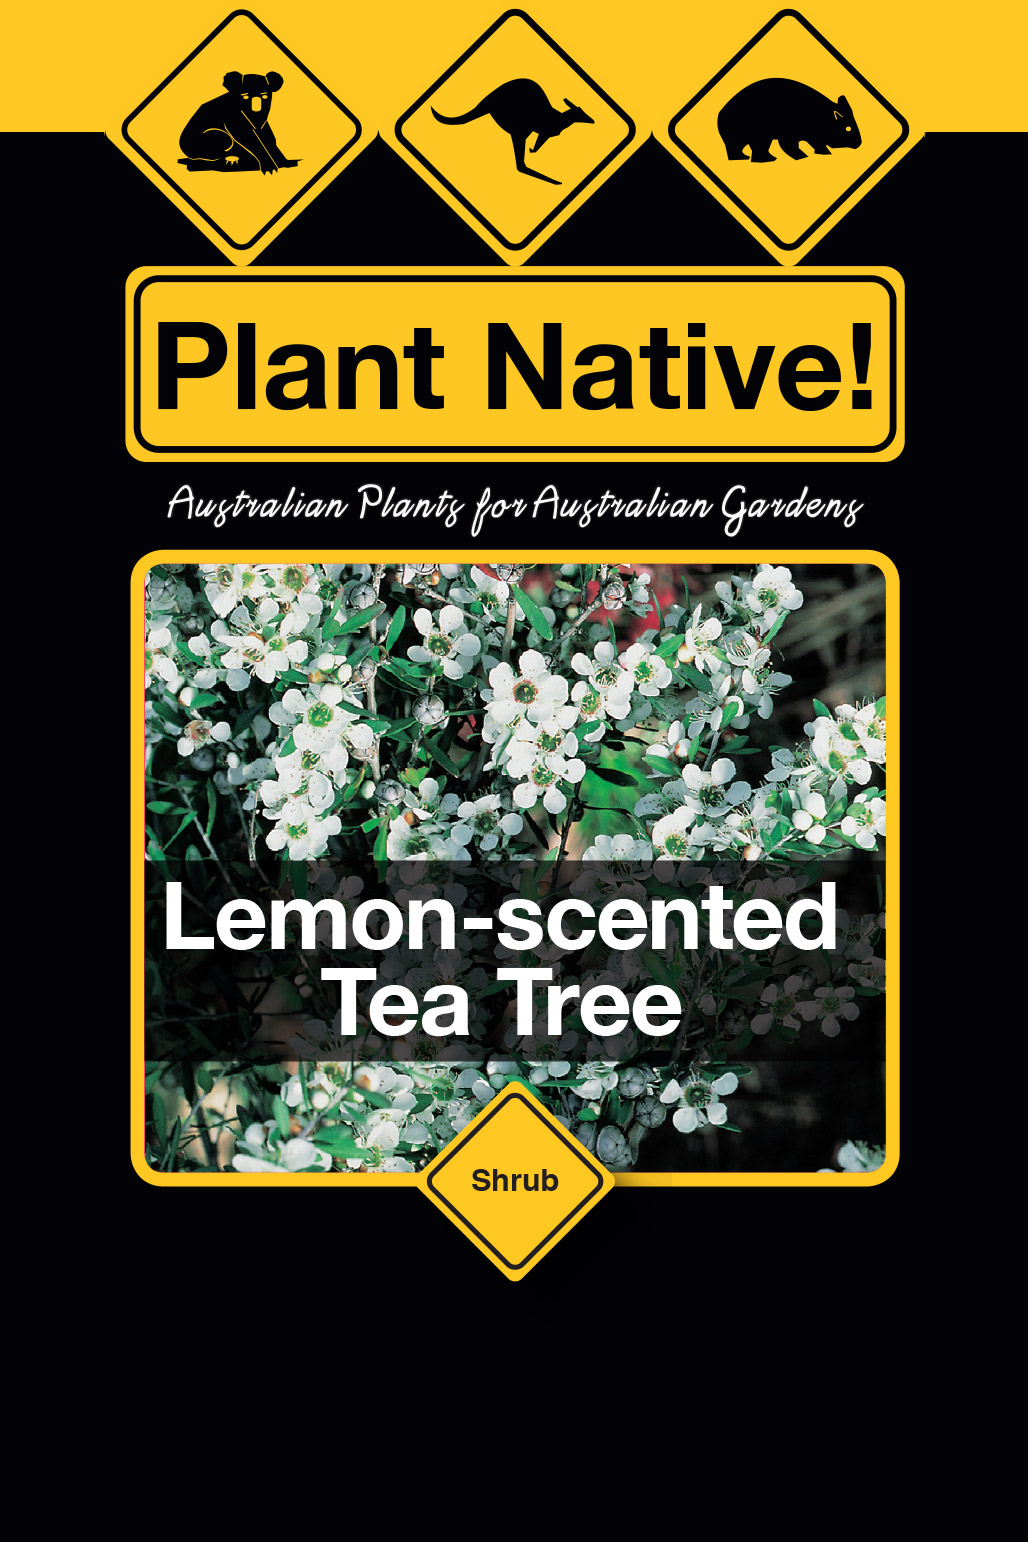 Lemon-scented Tea Tree - Plant Native!